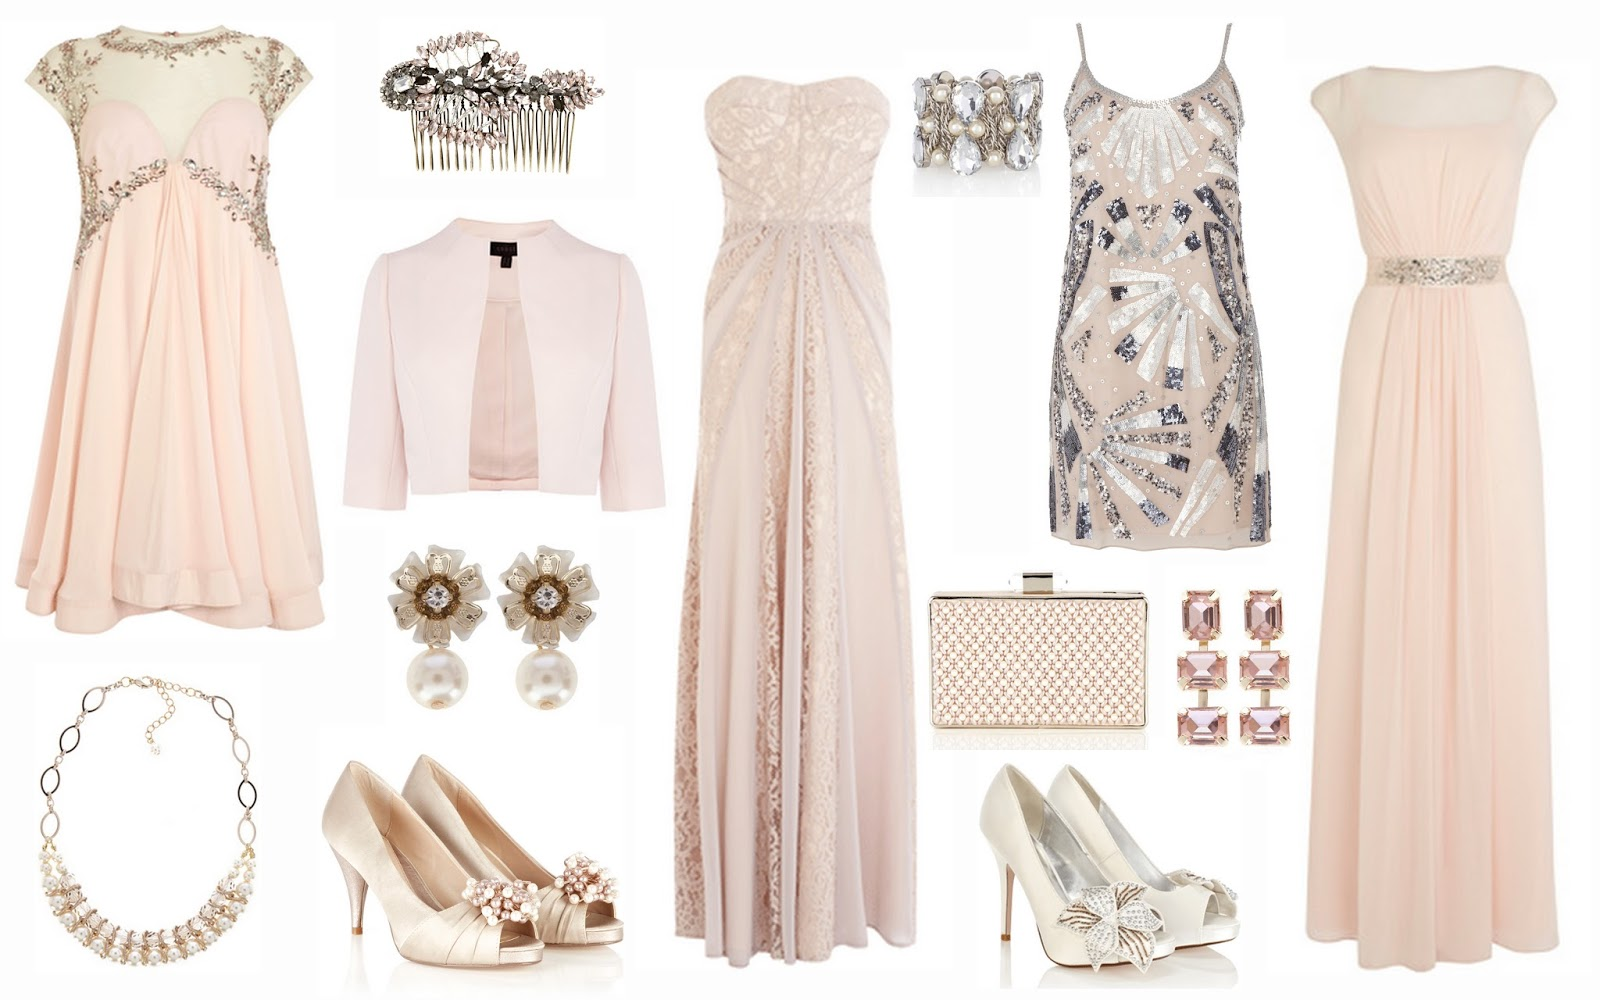 a6b420bbcd2 From top to bottom  Thalia blush embroidered dress £250. Padme pearl  necklace £25. Rupal hair comb £9. Keleste cropped blazer £75. Anakin pearl  earrings £7.